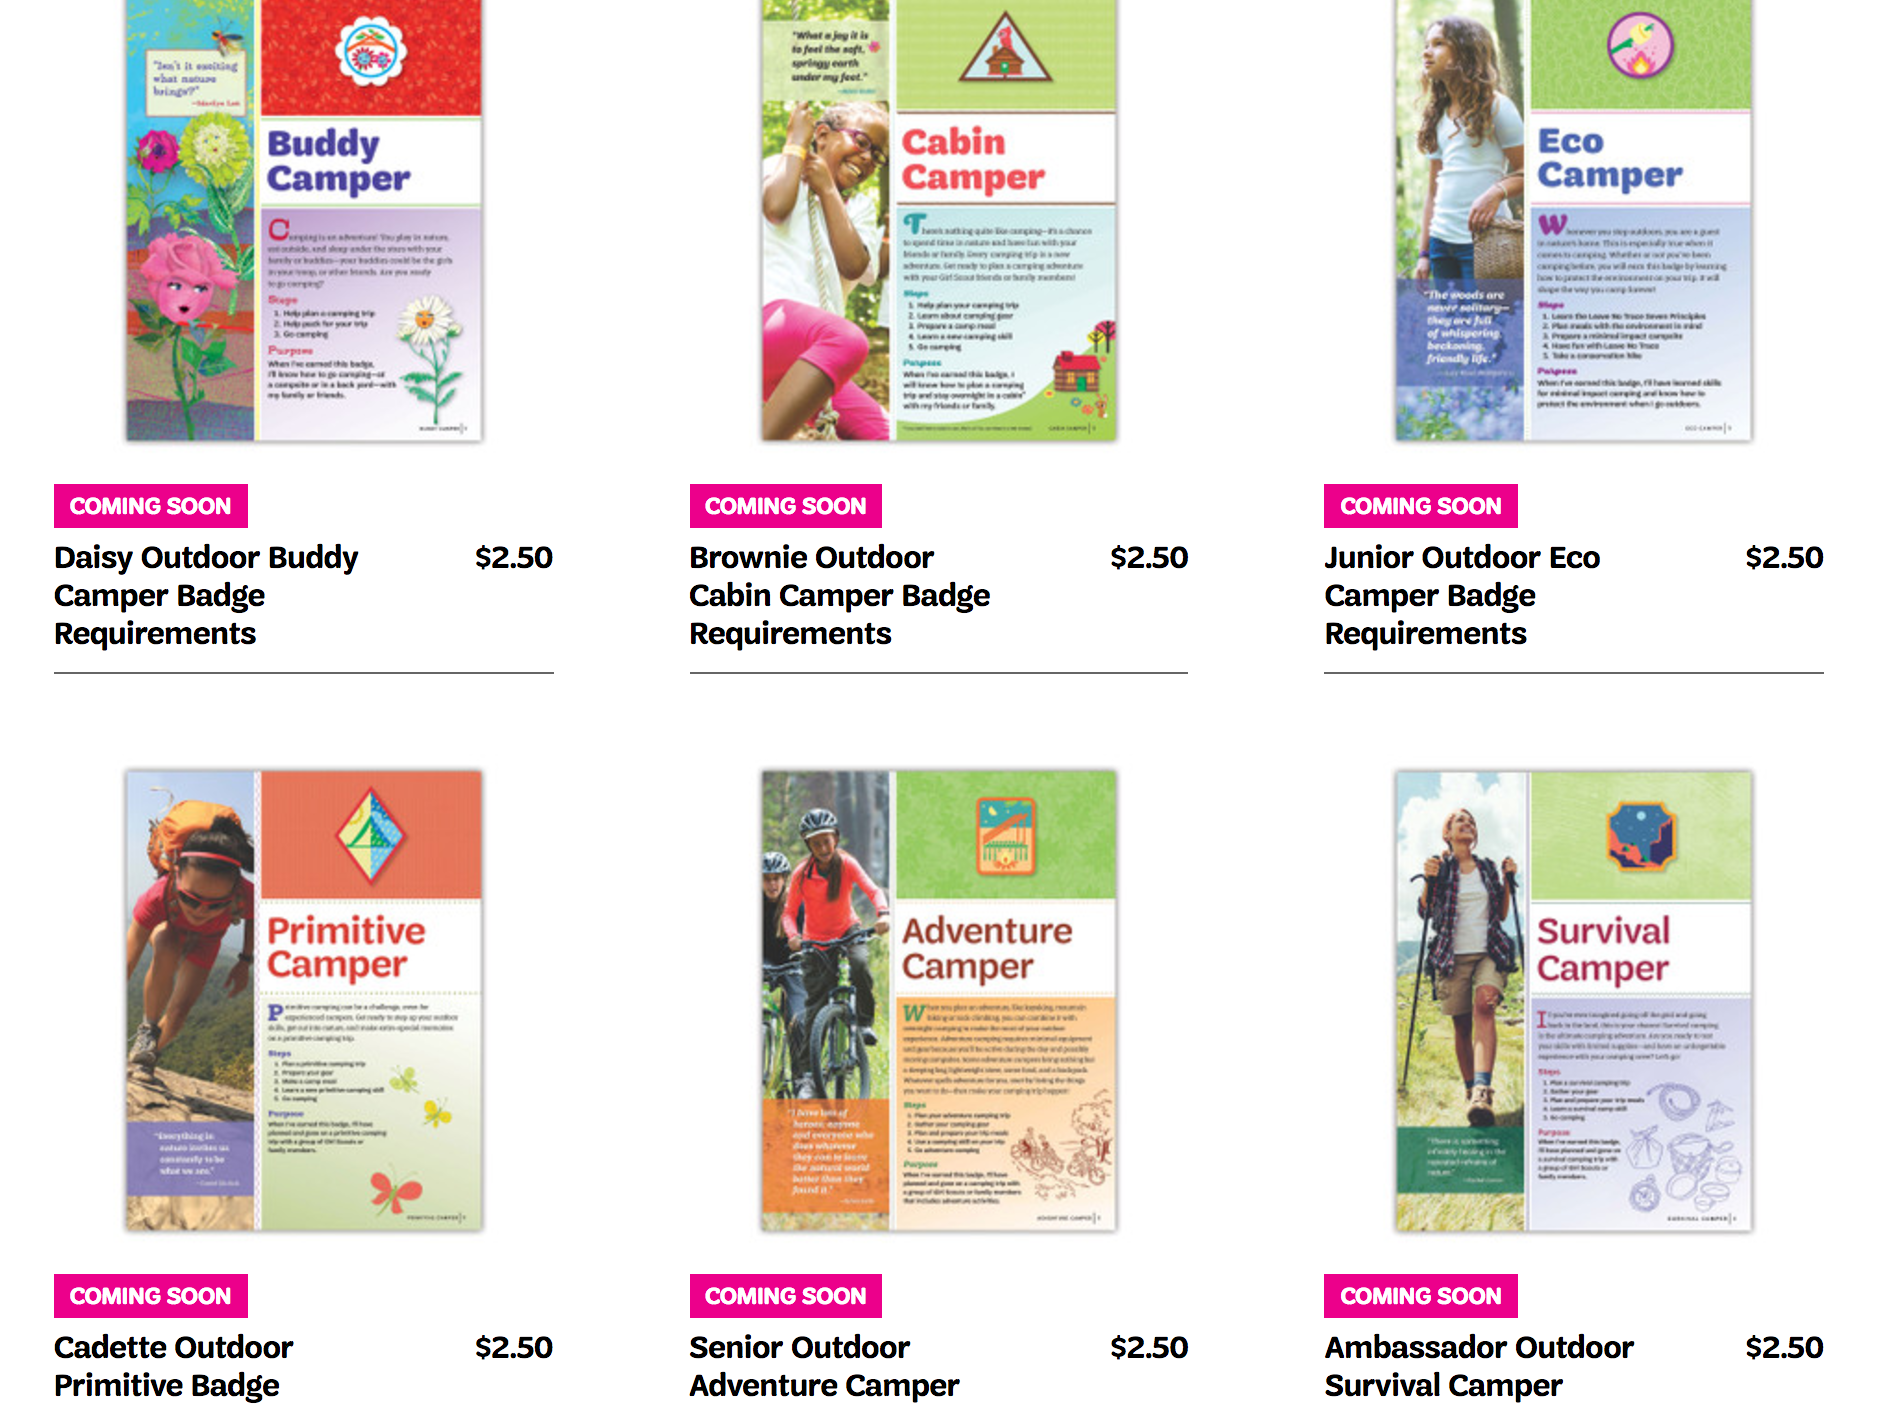 Image captured from http://www.girlscoutshop.com/BADGES-PINS/OUTDOOR-BADGES.